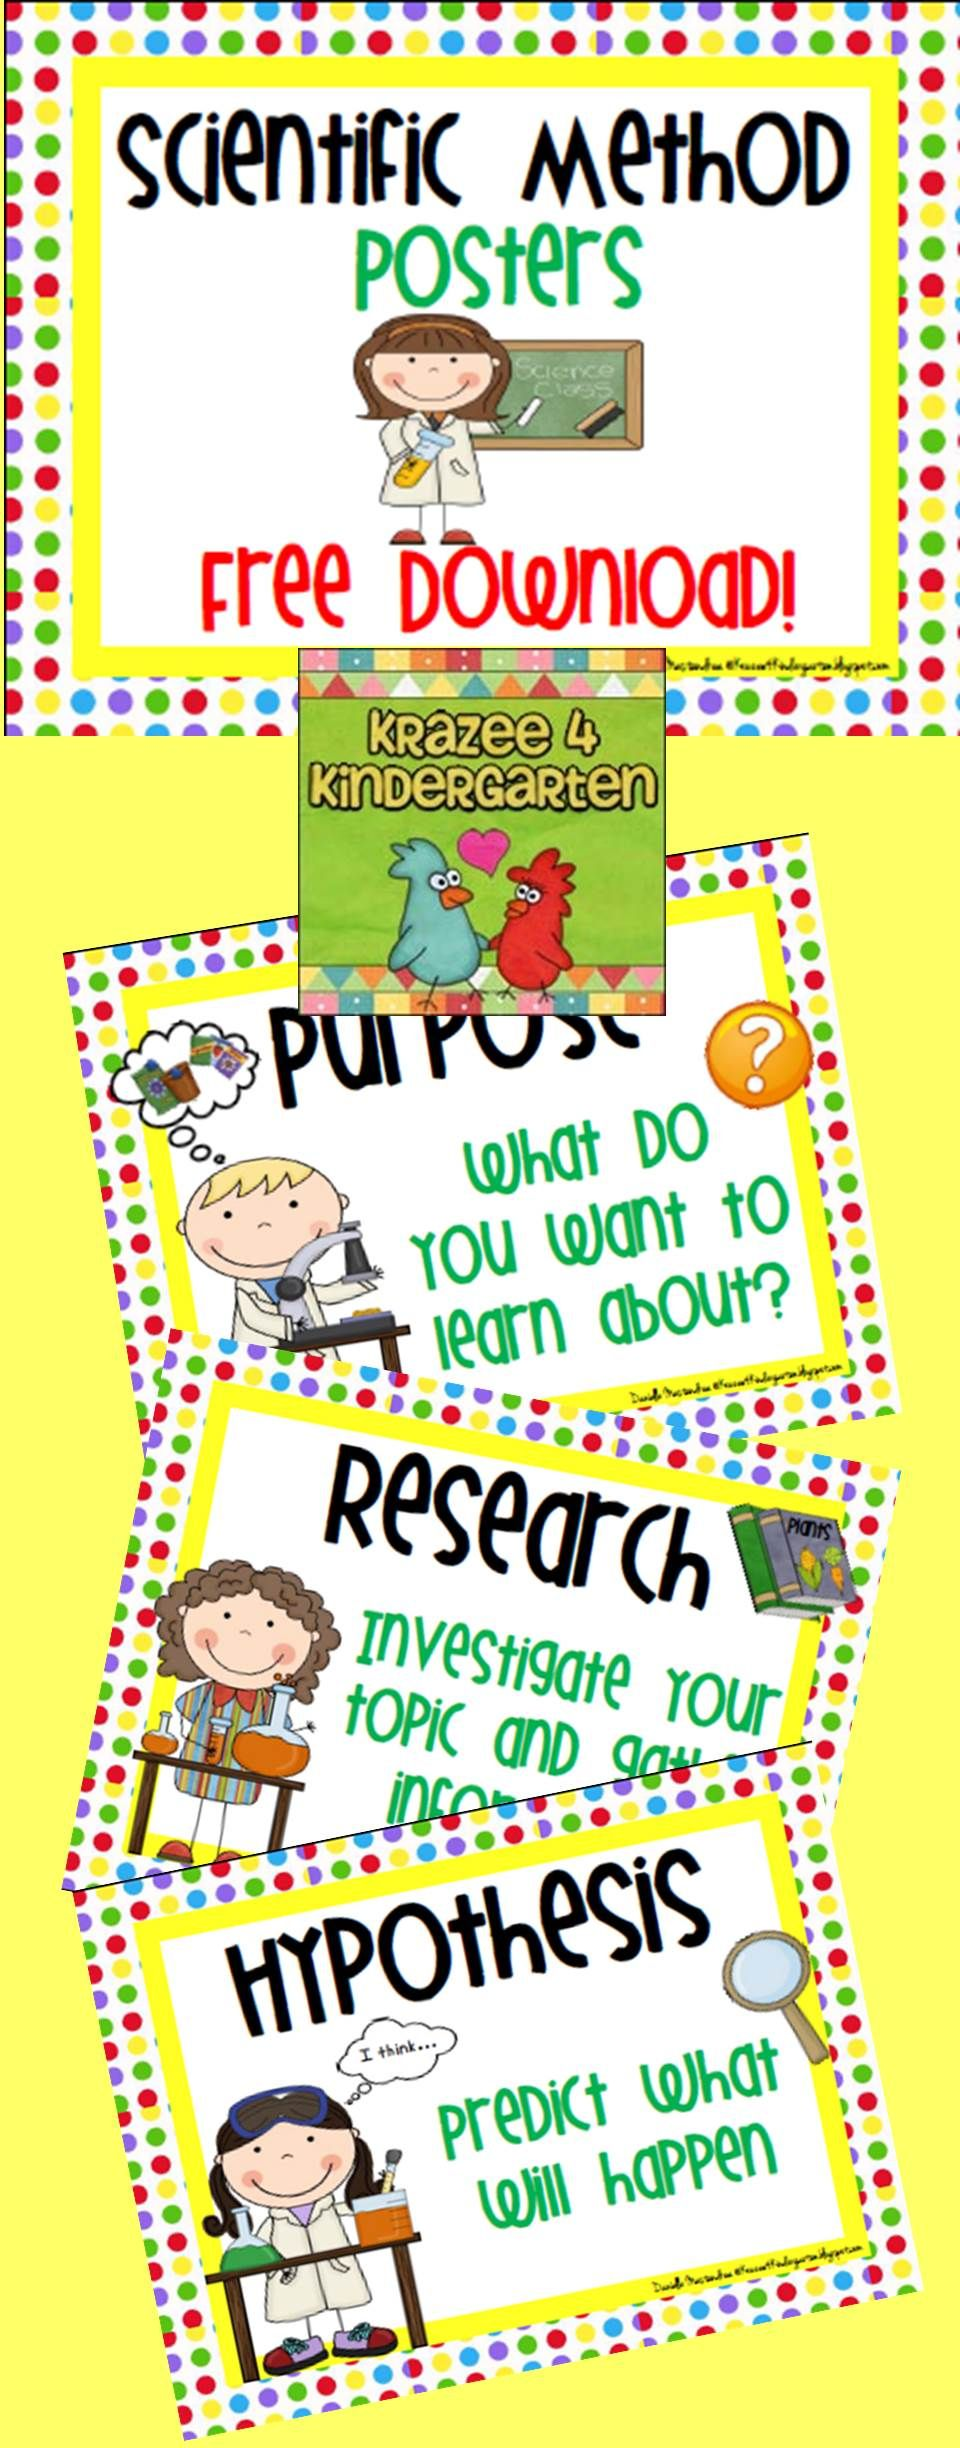 Scientific Method Posters Free Scientific method